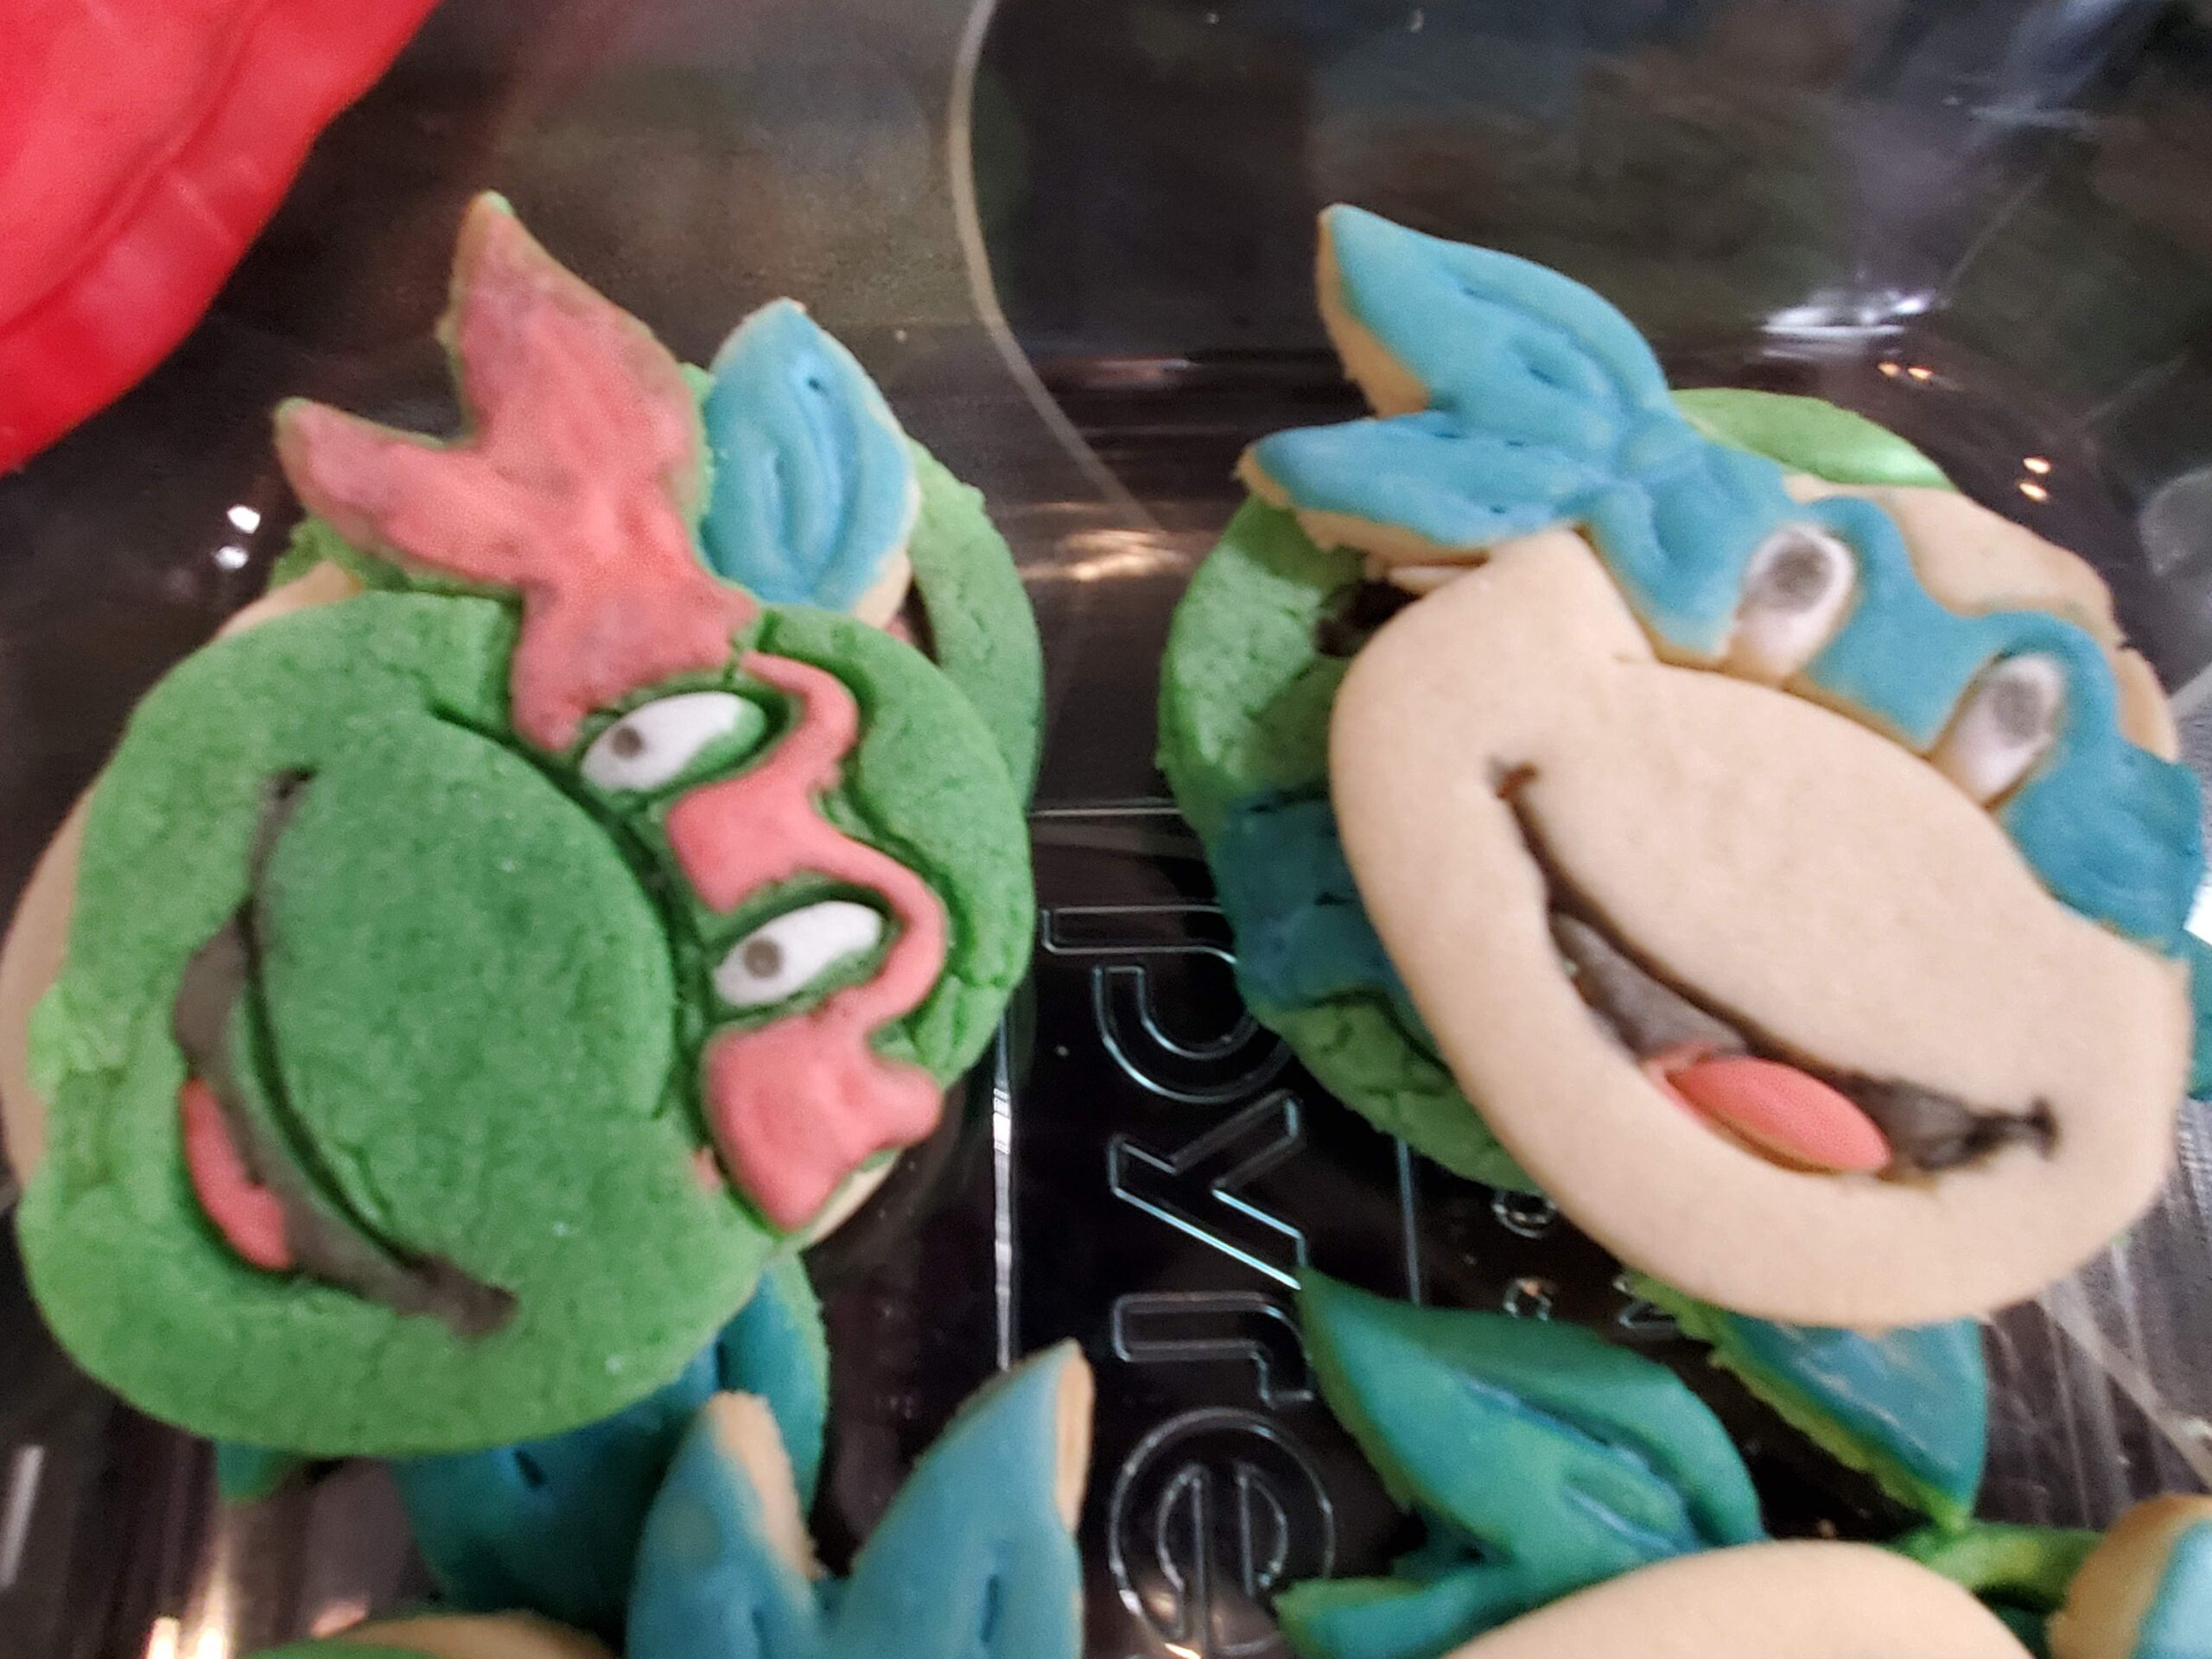 Cookies decorated to look like ninja turtle heads. One is made from green dough and painted with a red mask. Another is untinted dough with a blue mask.